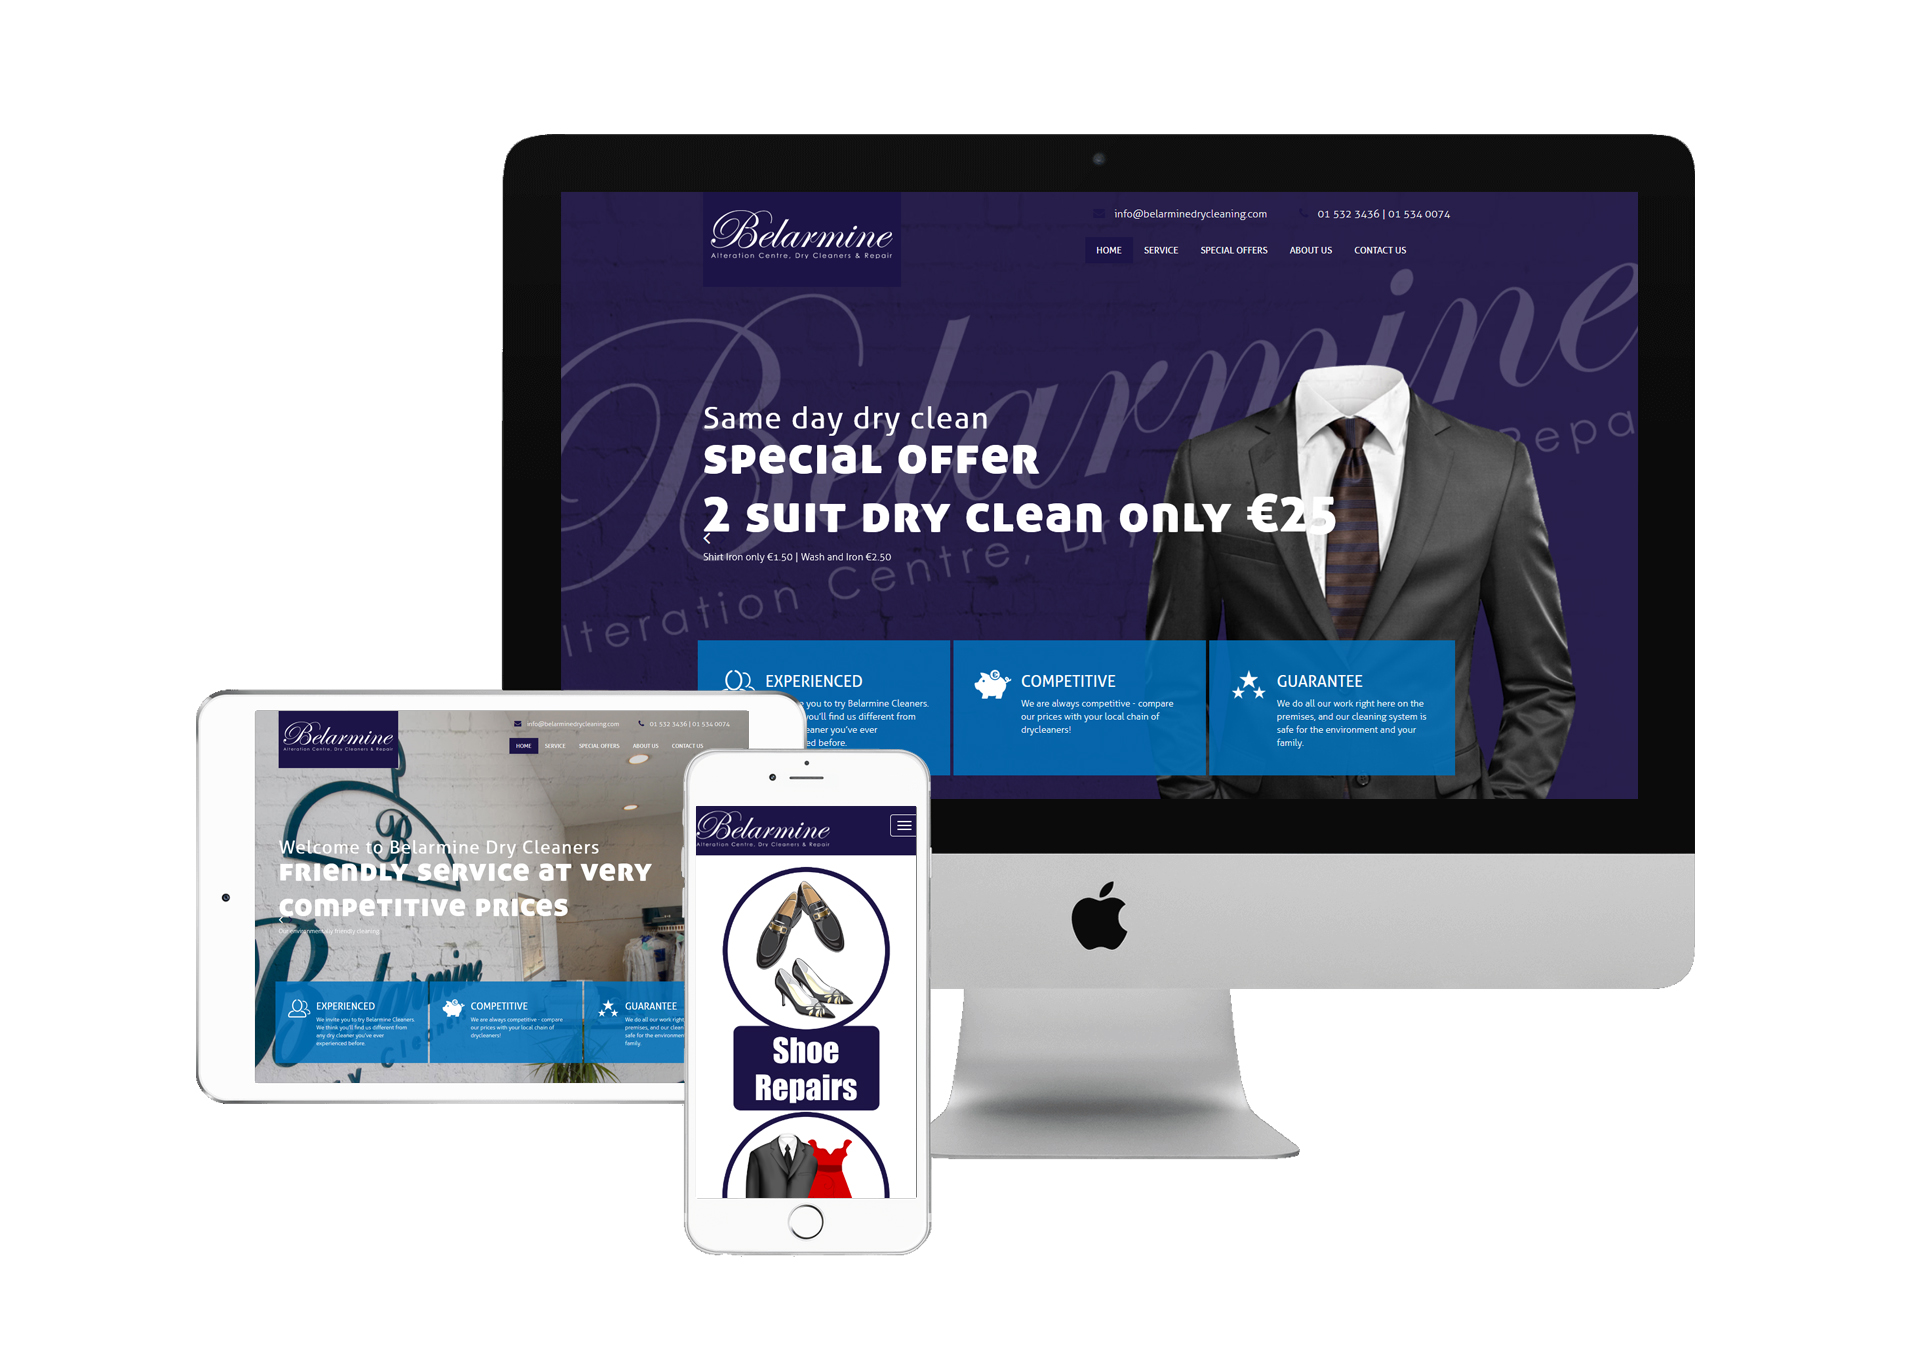 Belarmine Dry Cleaners